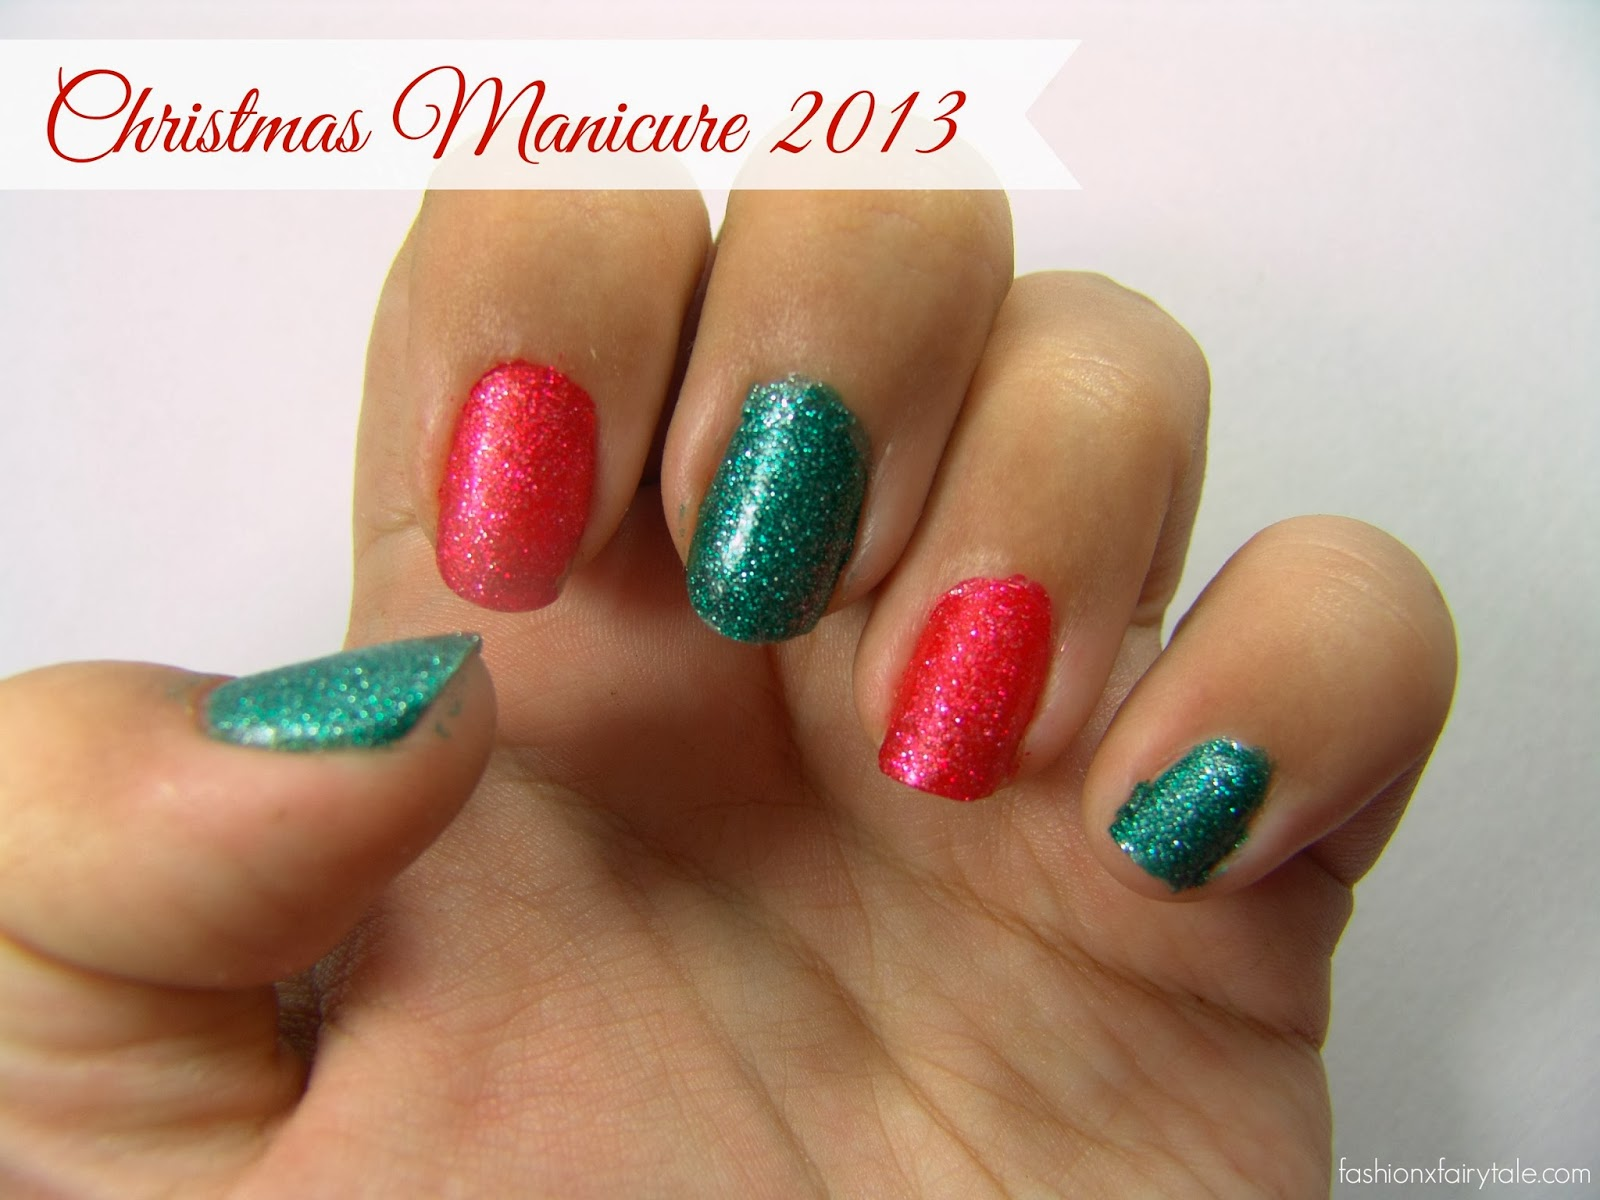 Christmas Manicure 2013 + Giveaway